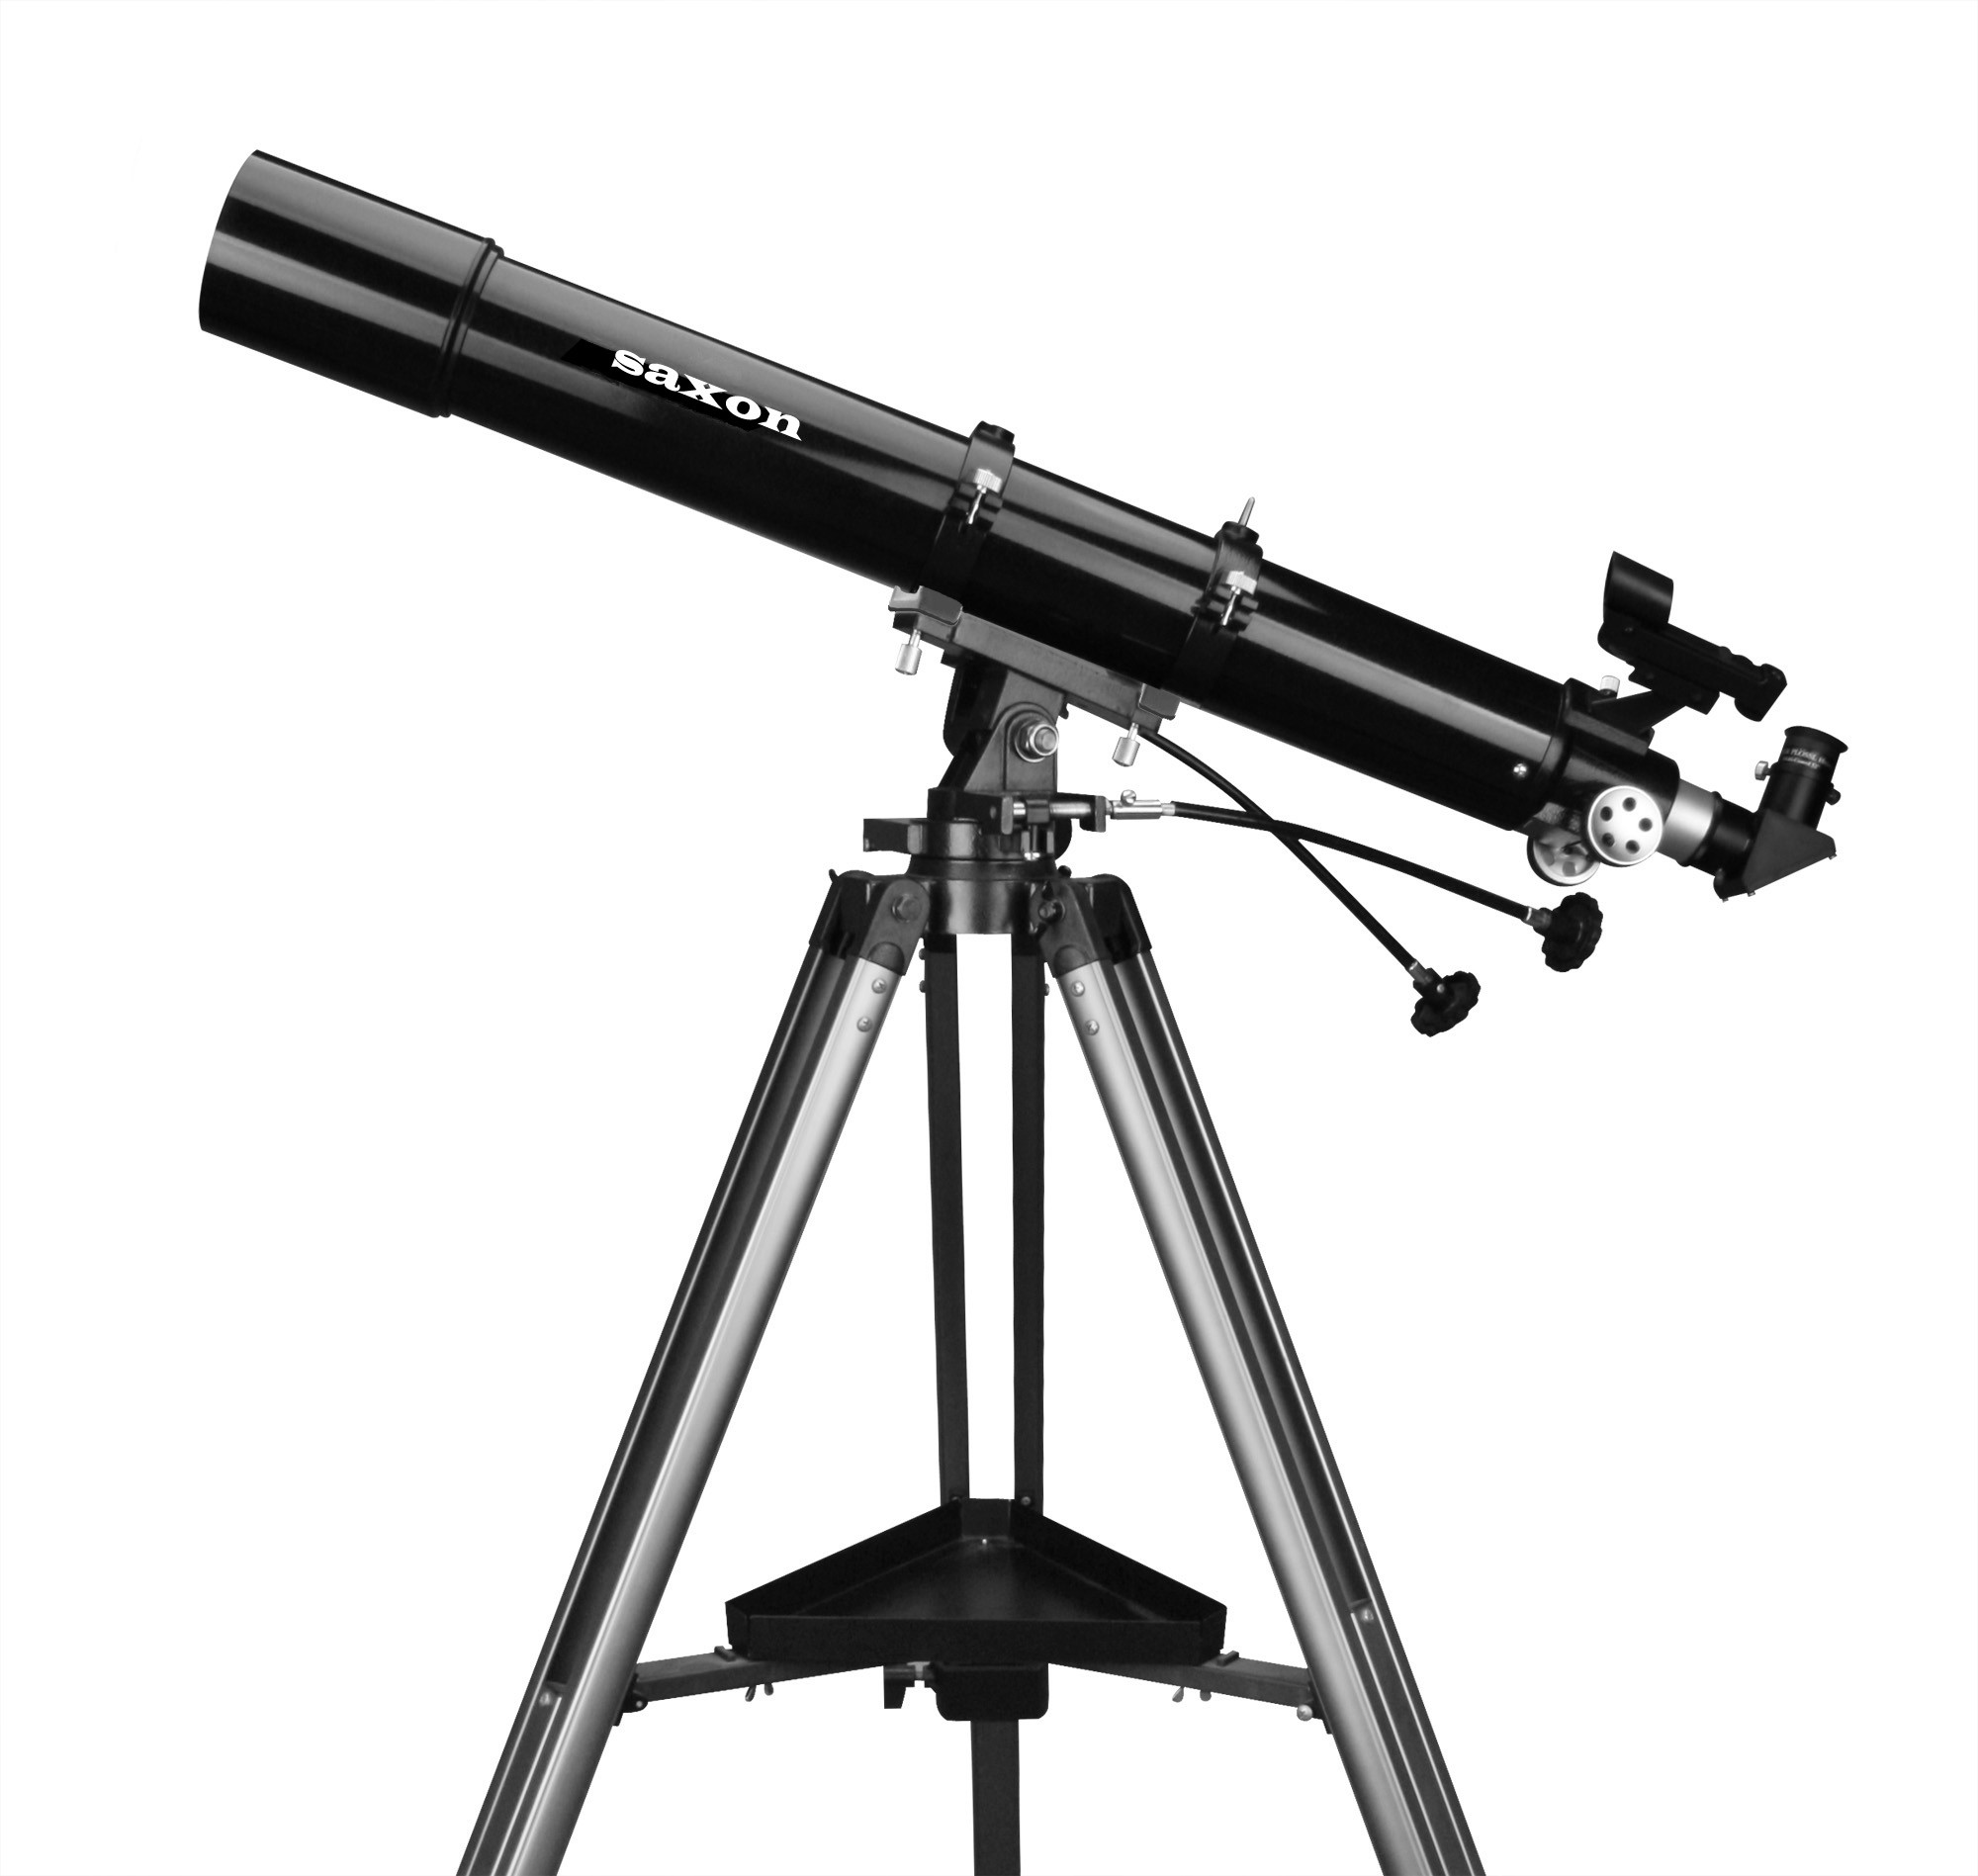 Ready to get started with your budget-friendly astronomy hobby?